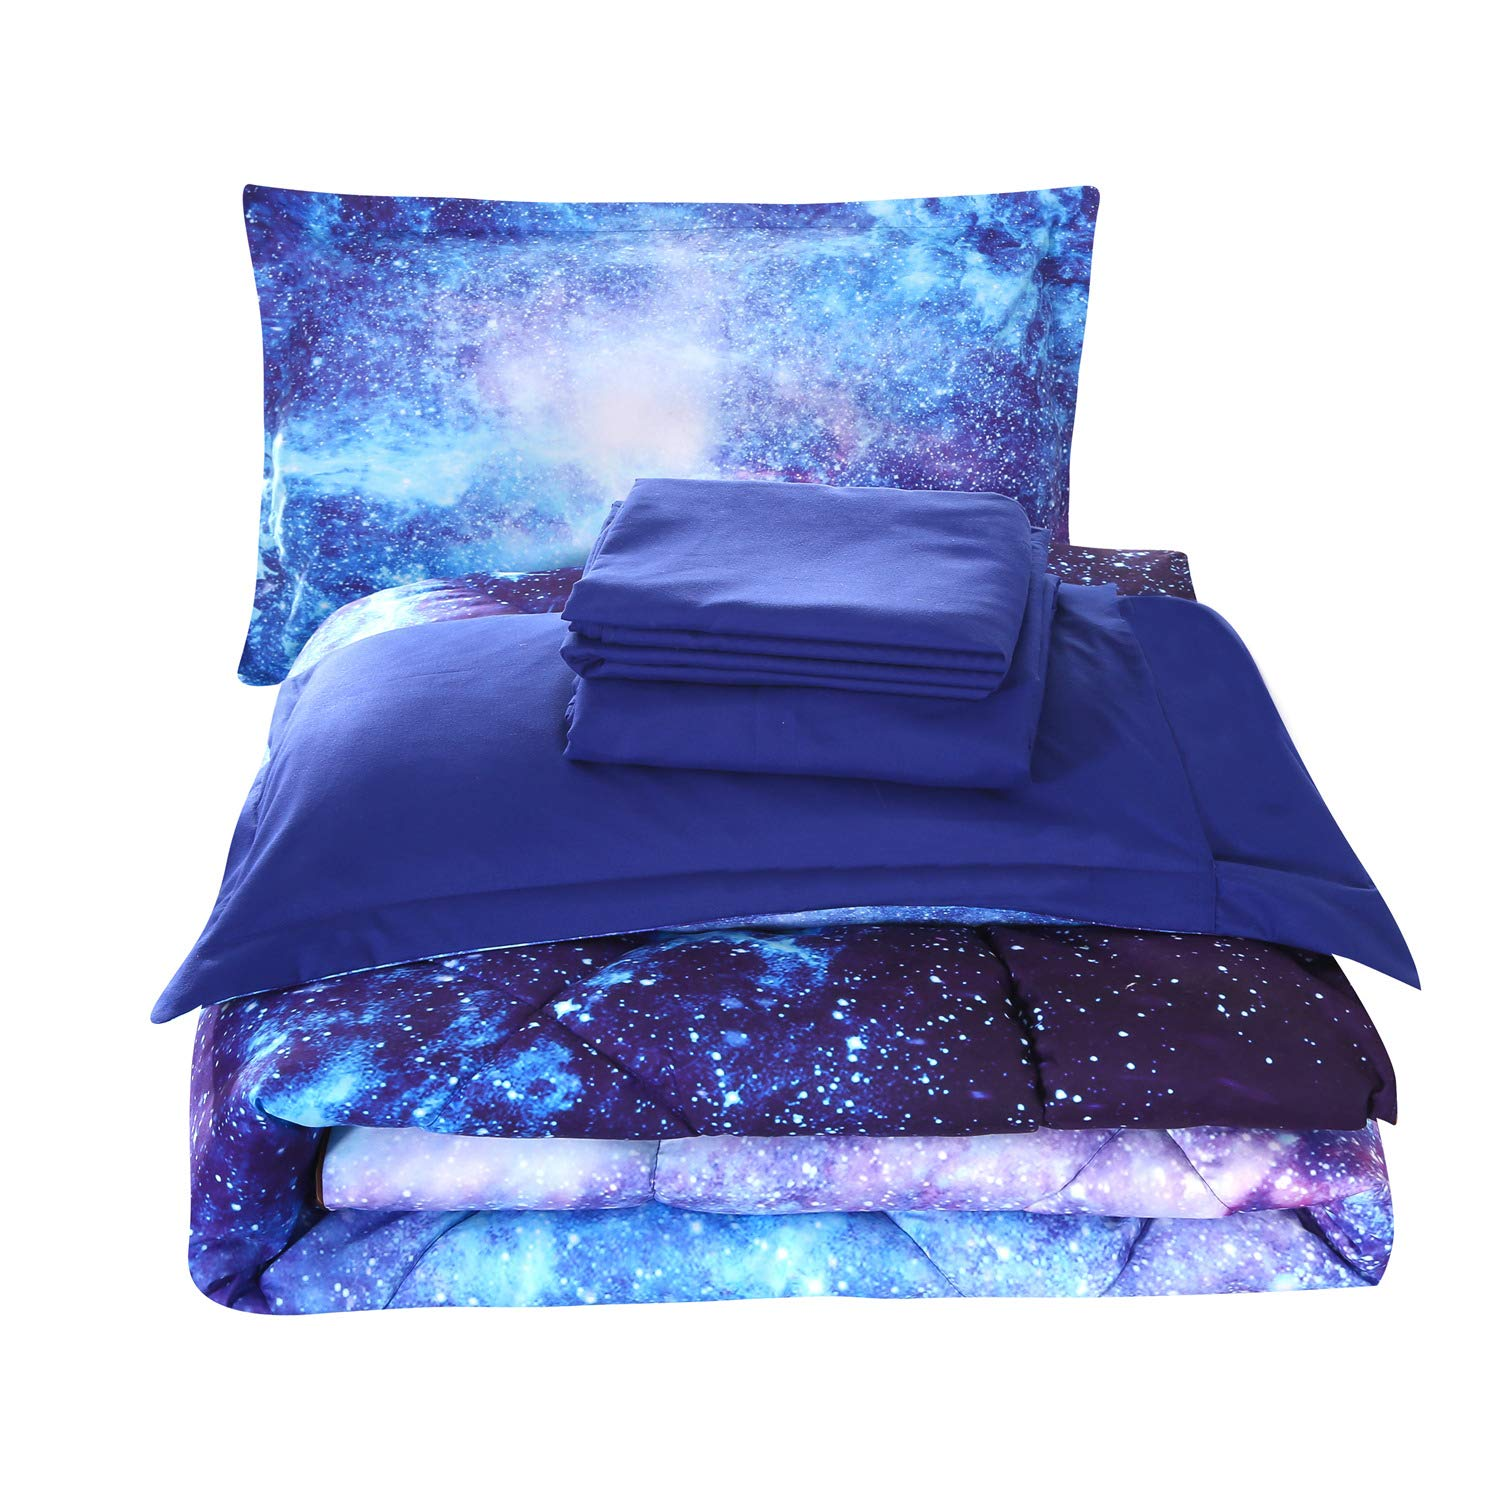 Wowelife Galaxy Comforter Sets Queen 3D Outer Space Blue Bedding Sets 5 Piece with Print Comforter for Adults and Teens(Queen-5 Piece, Blue Galaxy)